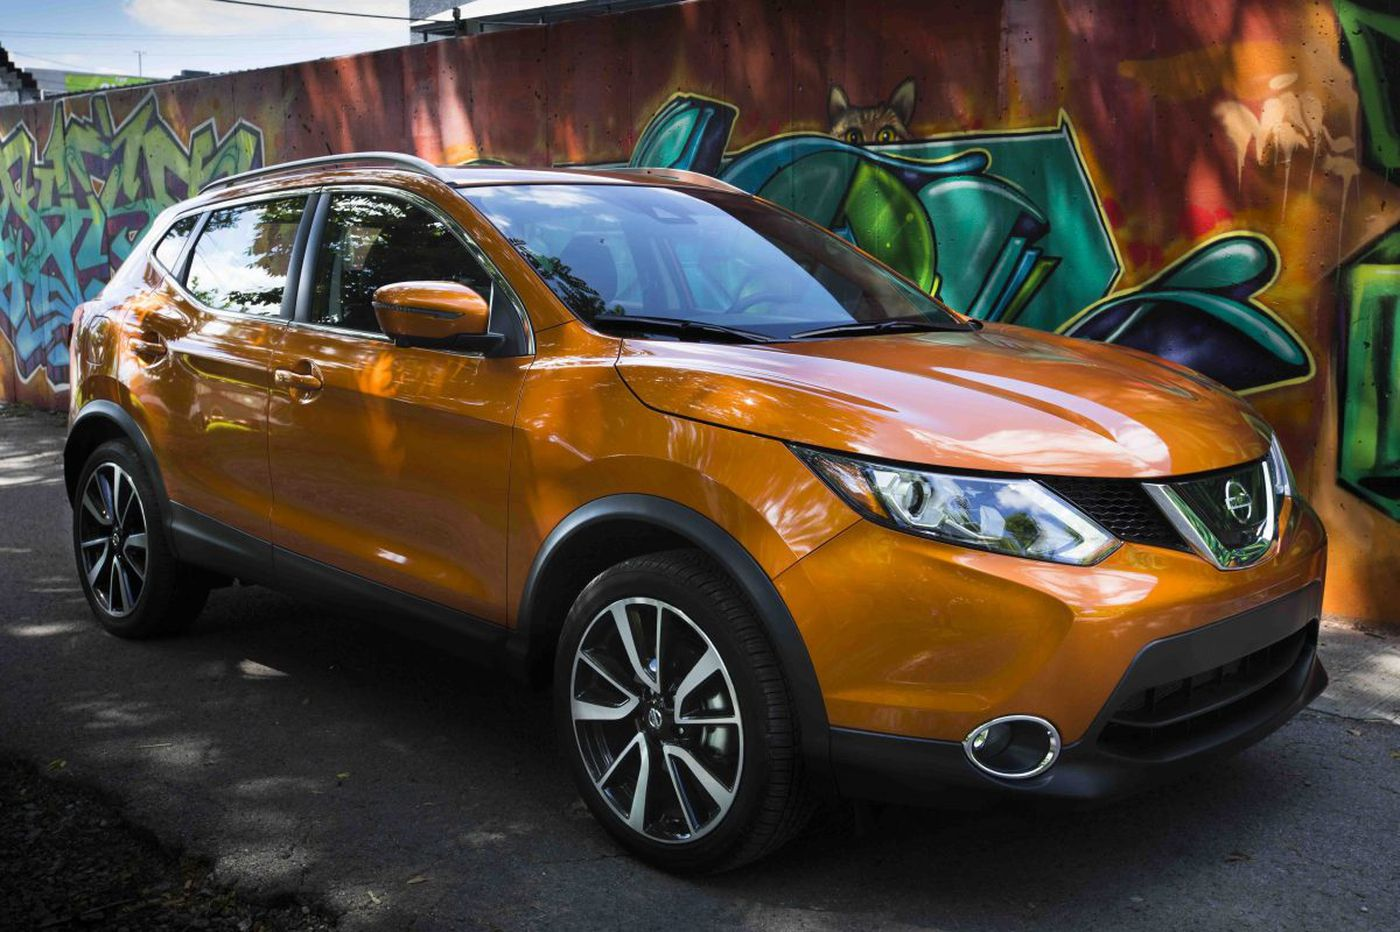 Nissan's Rogue Sport lacks that je ne sais quoi